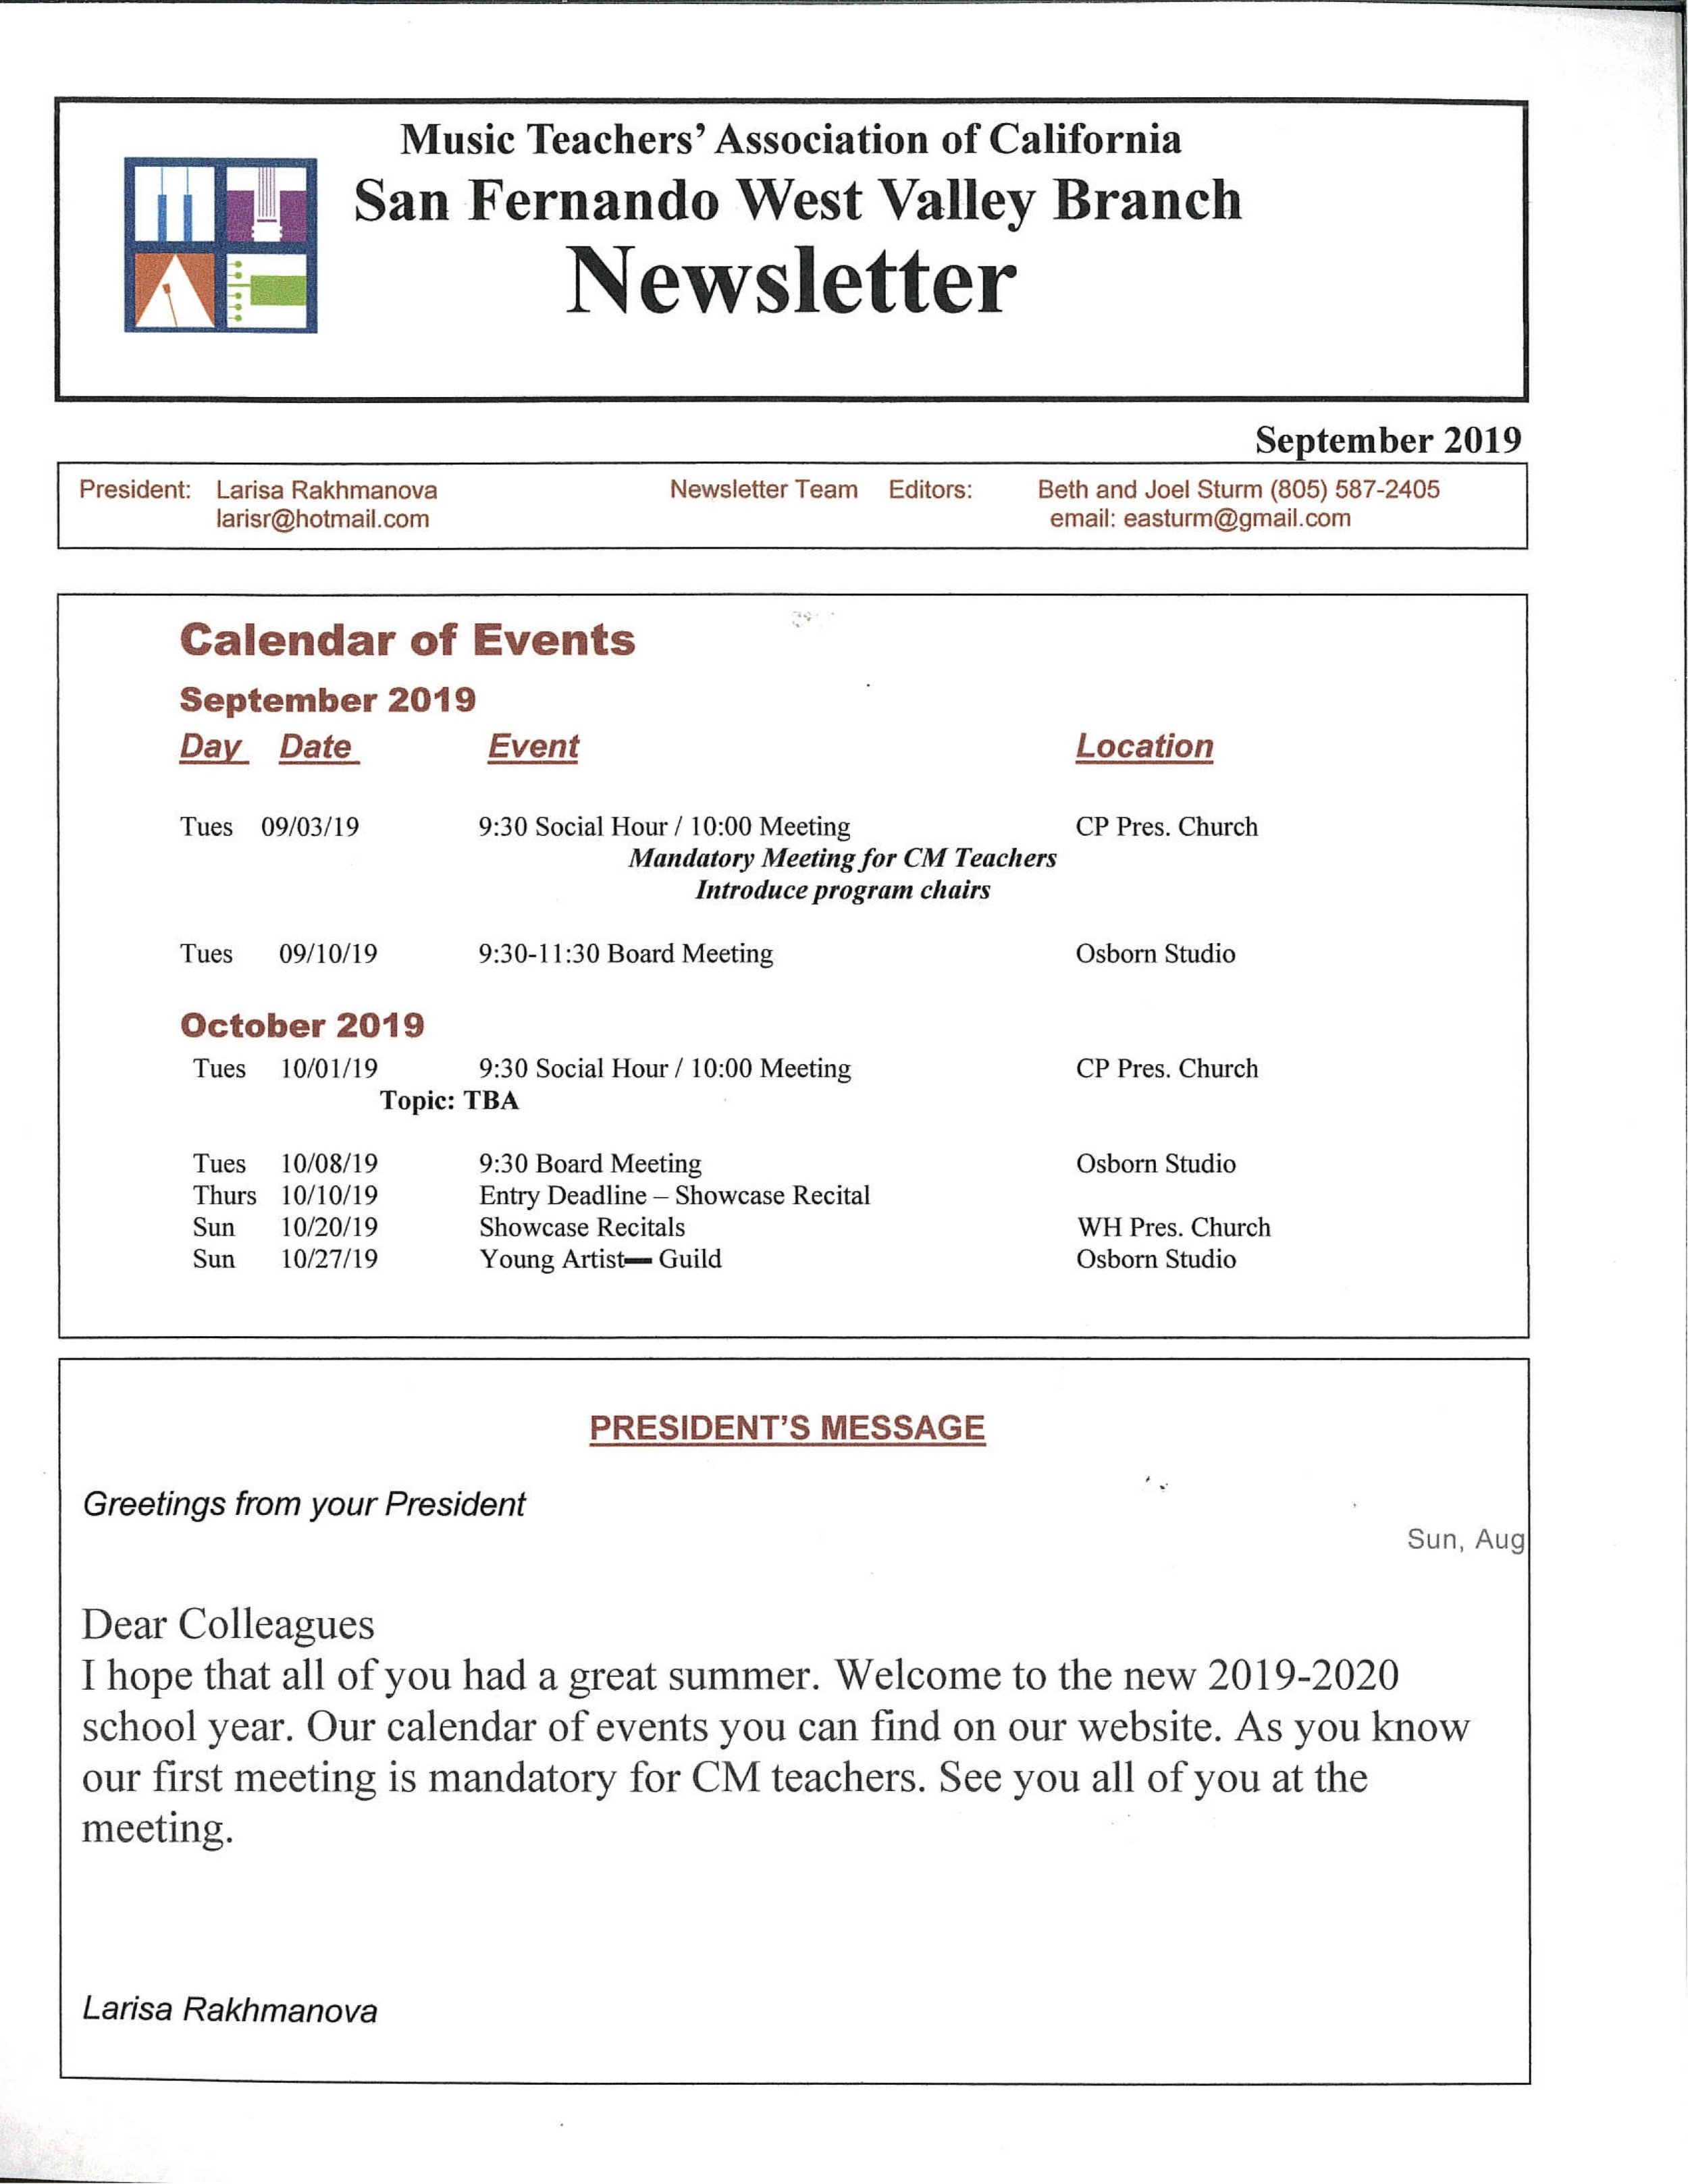 Newsletter Sept 2019.jpg